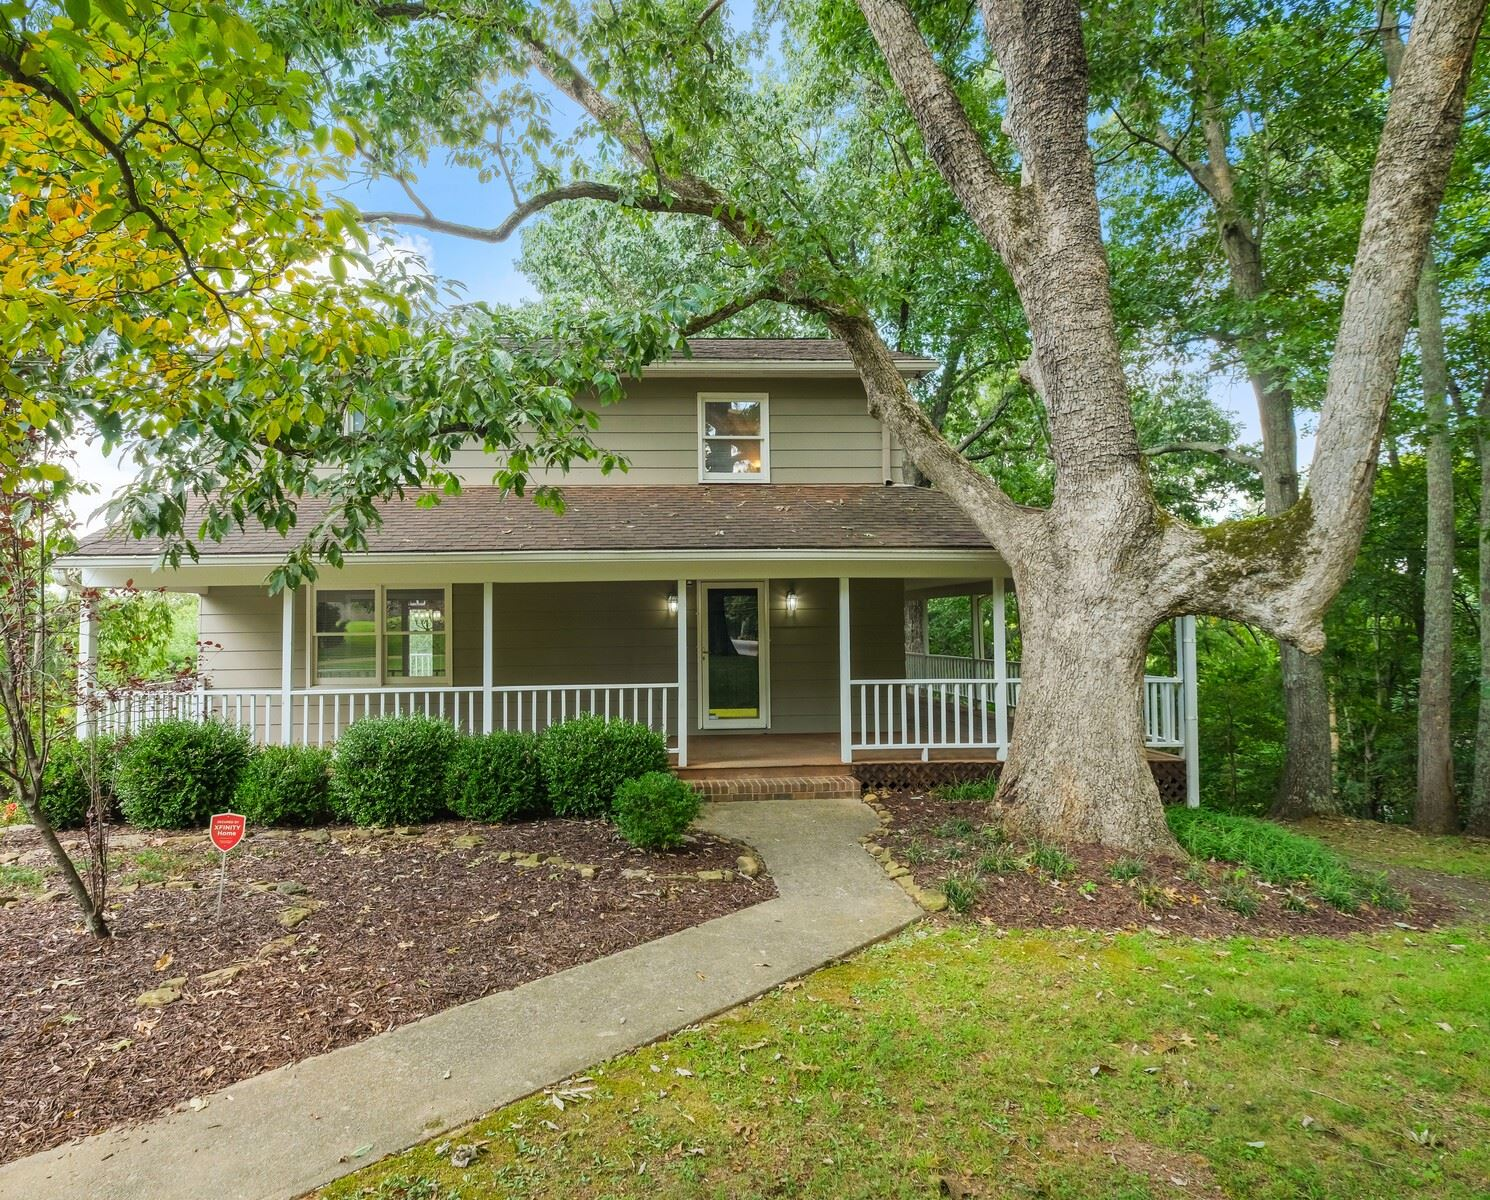 Photo of 212 Evergreen Ct, Brentwood, TN 37027 (MLS # 2292102)